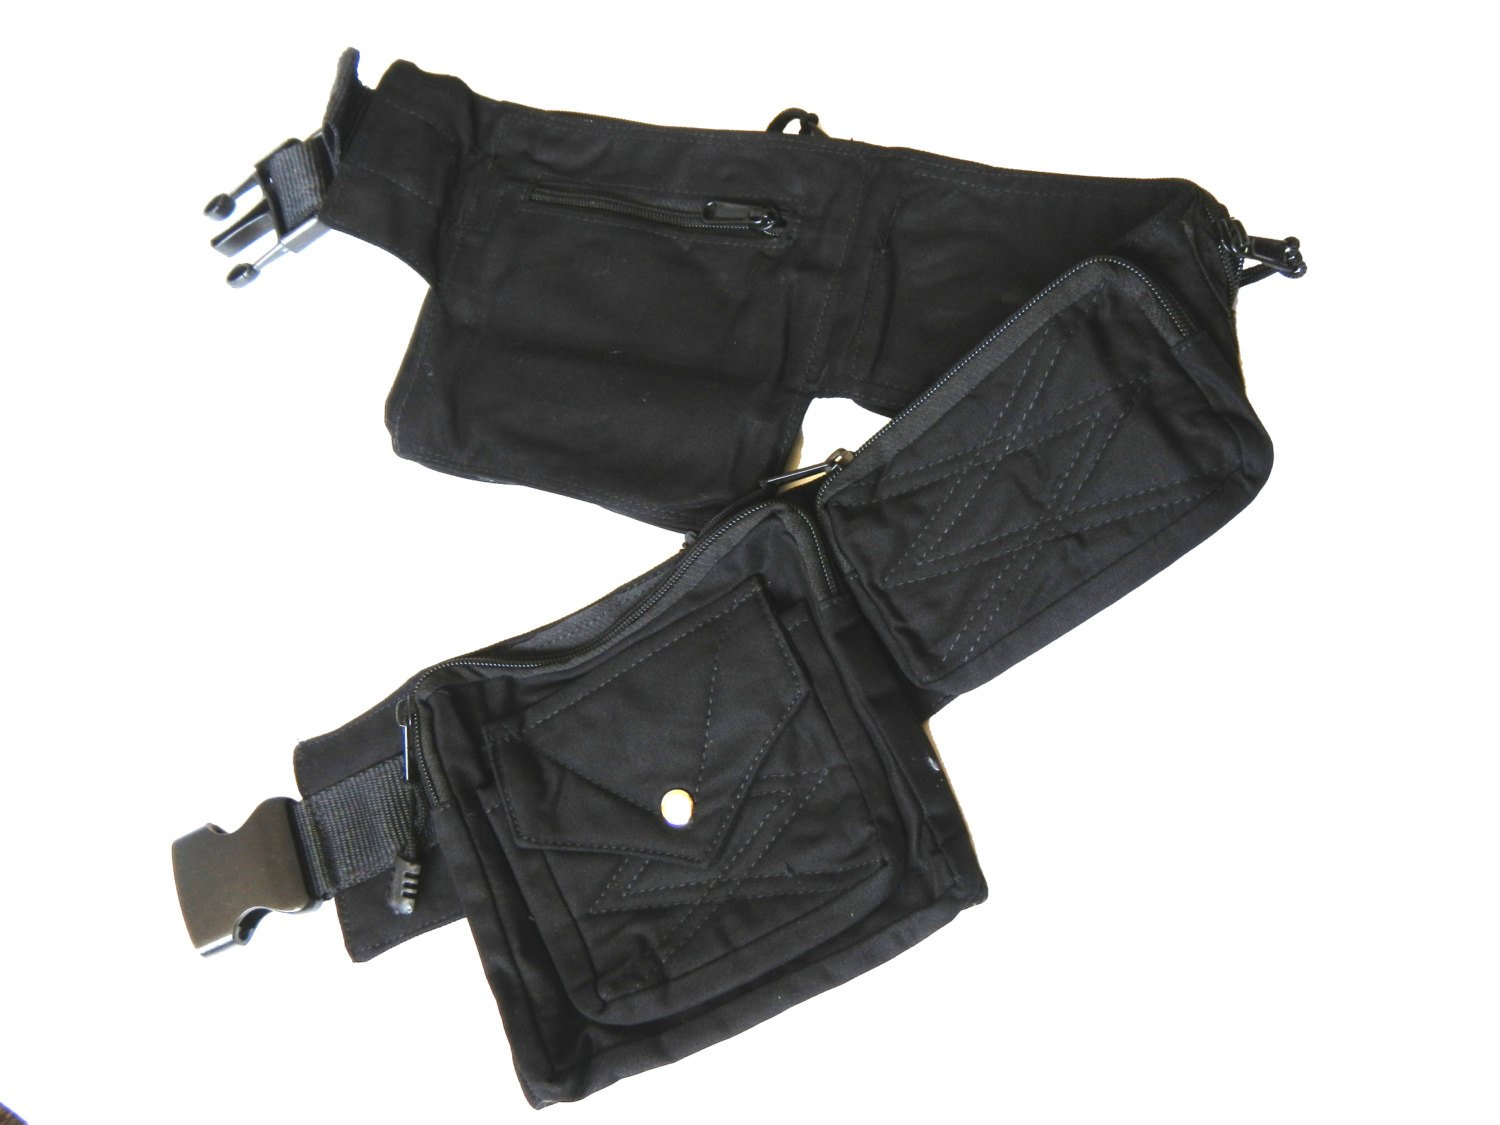 Canvas Utility Belt | Black, 8 pockets | travel, cosplay, festival, cotton, hip bag